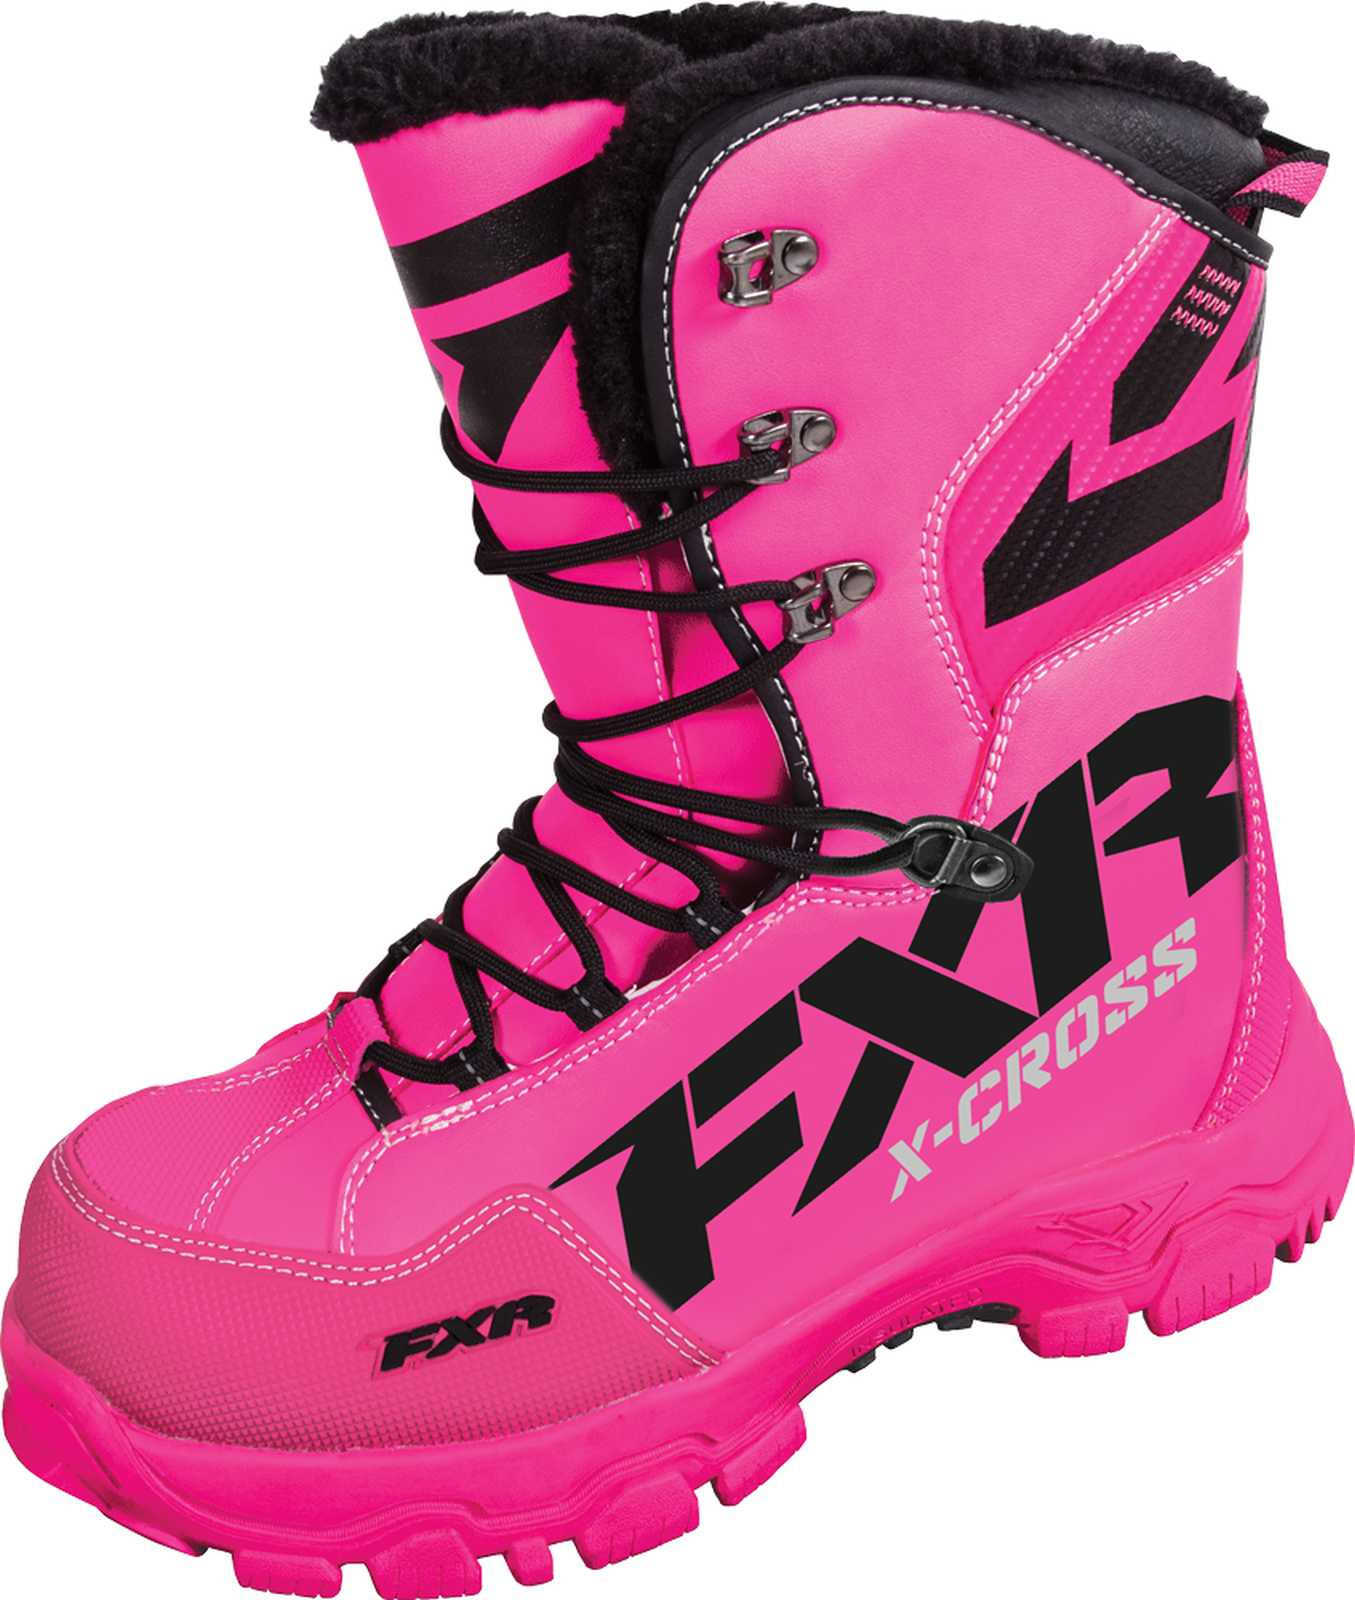 new fxr snow x cross womens insulated boots fuchsia pink